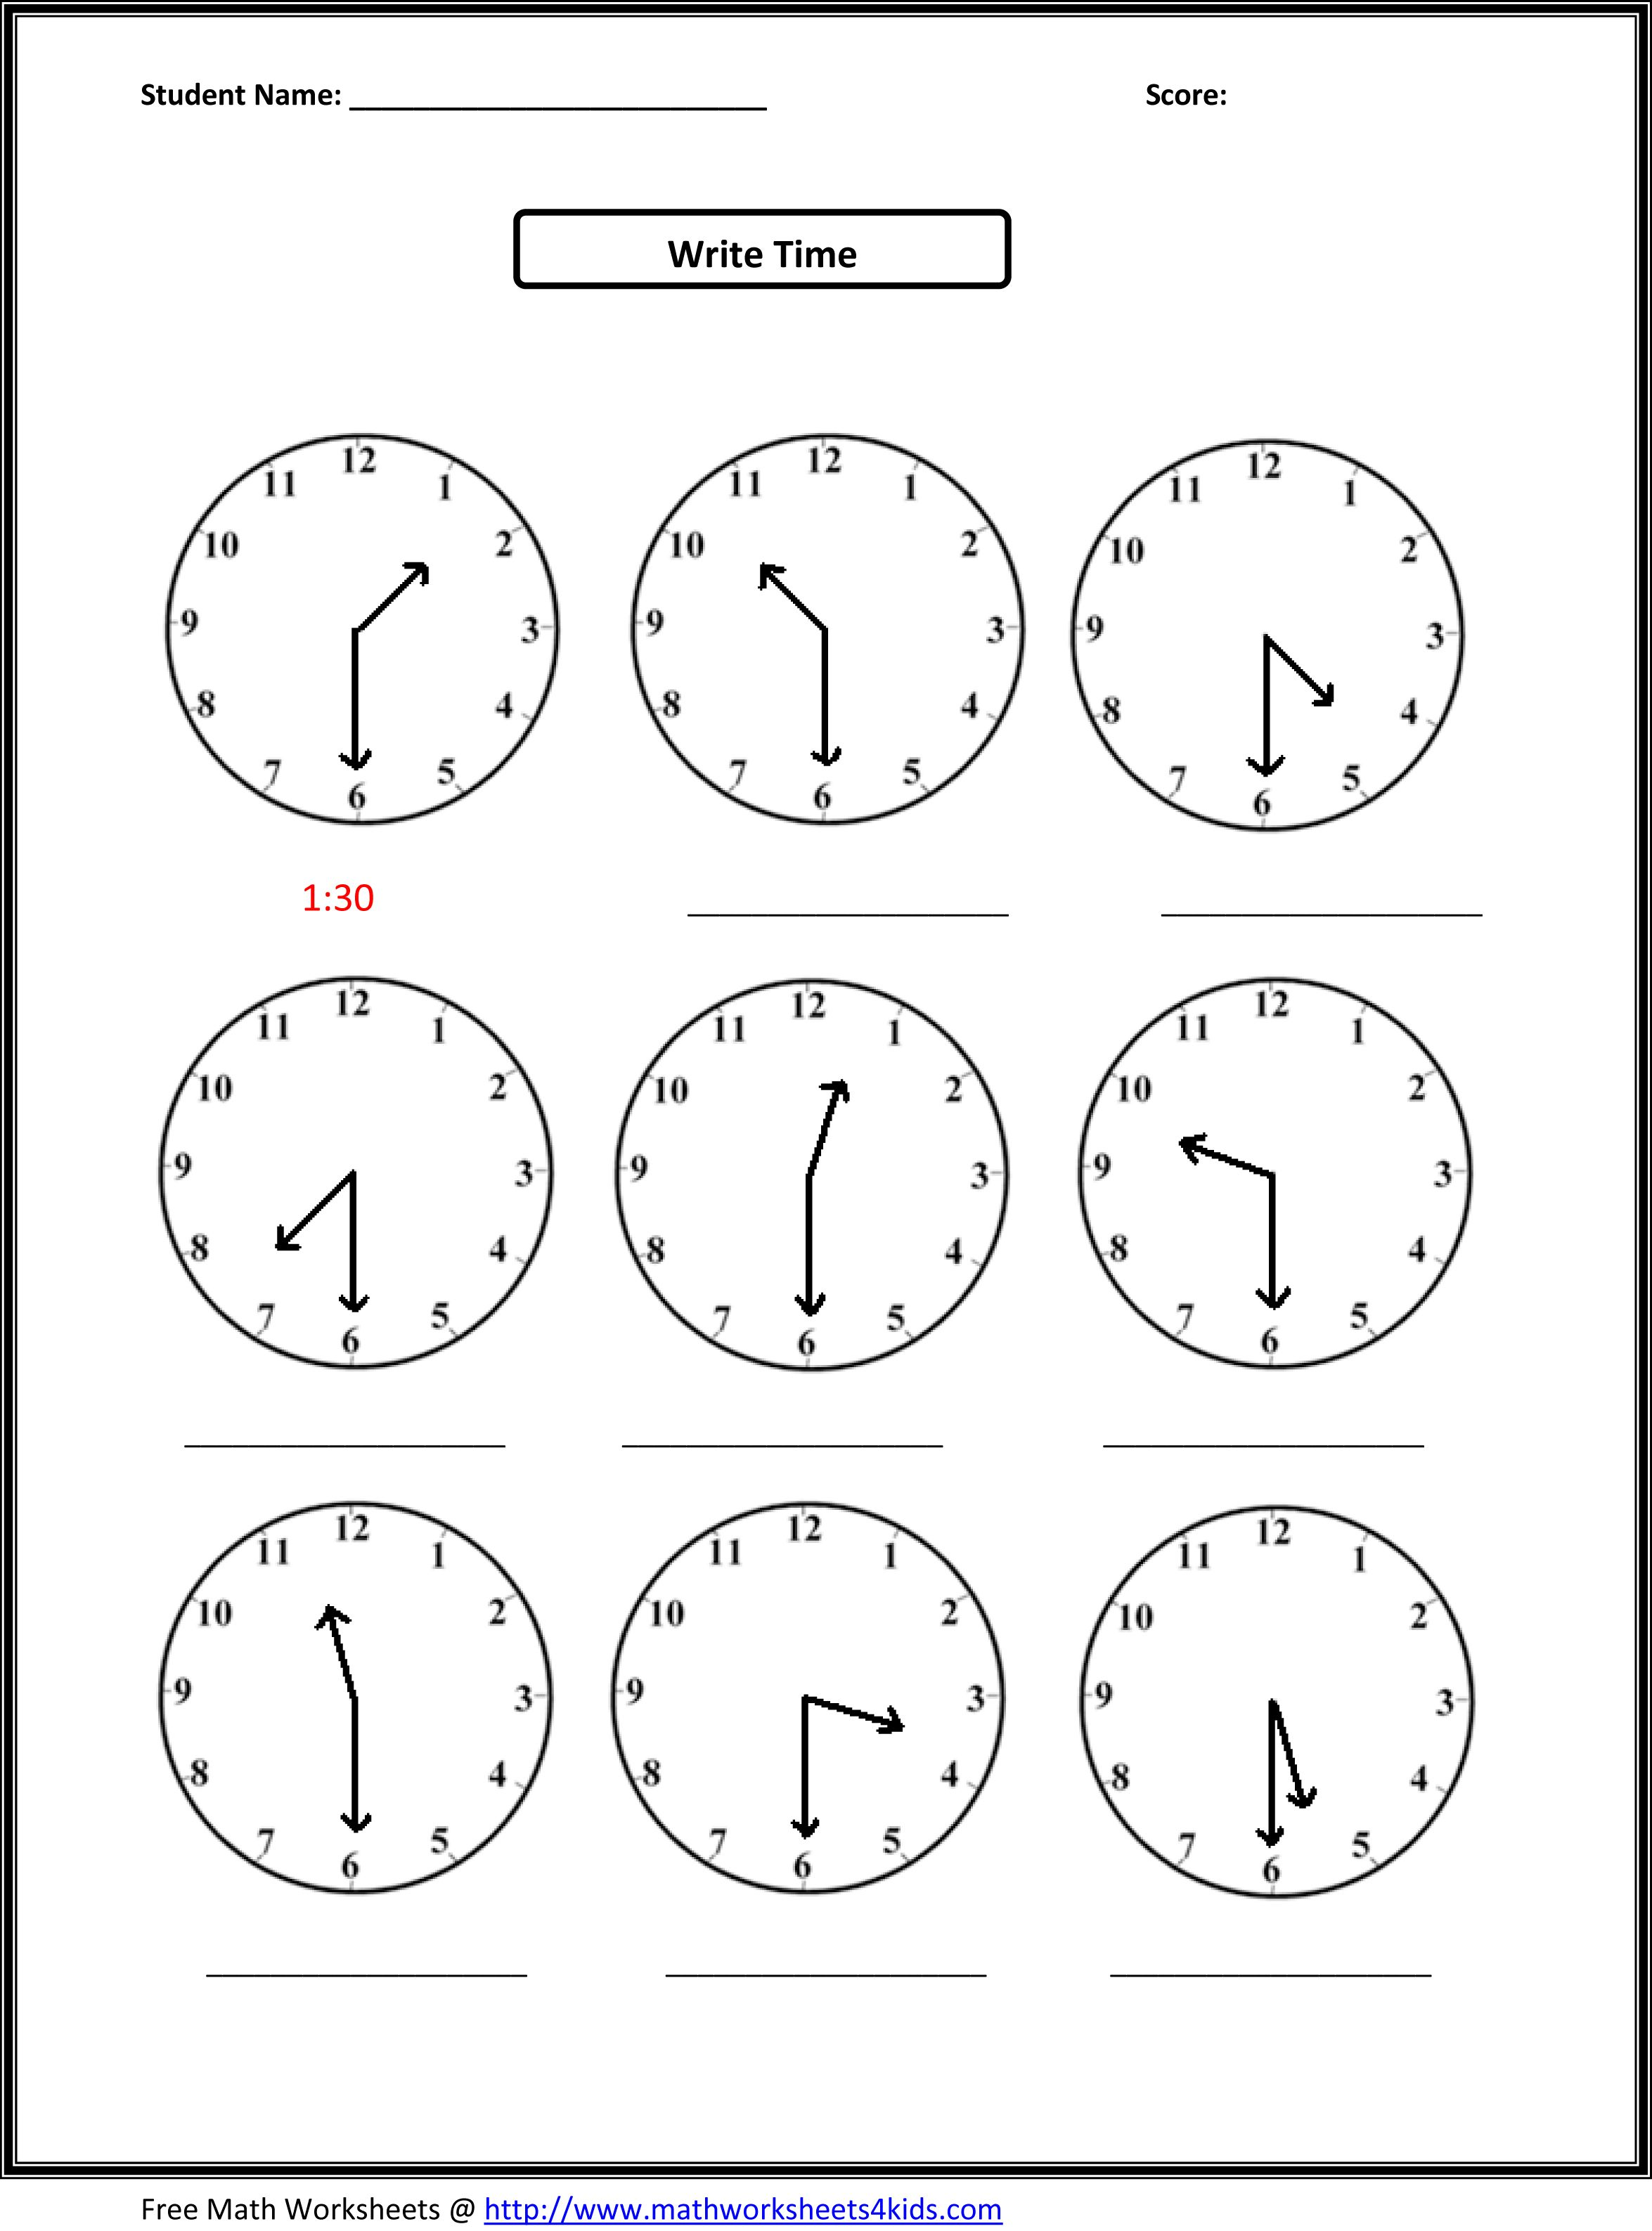 Weirdmailus  Personable Worksheet On Time For Grade   Reocurent With Likable Free Printable Telling Time Worksheets Nd Grade  Reocurent With Astounding Th Grade Multiplication Worksheets Also Worksheet Creator Software In Addition Present And Past Tense Verbs Worksheet And Ten Commandment Worksheets As Well As Long U Sound Worksheets Additionally Efc Worksheet From Reocurentcom With Weirdmailus  Likable Worksheet On Time For Grade   Reocurent With Astounding Free Printable Telling Time Worksheets Nd Grade  Reocurent And Personable Th Grade Multiplication Worksheets Also Worksheet Creator Software In Addition Present And Past Tense Verbs Worksheet From Reocurentcom